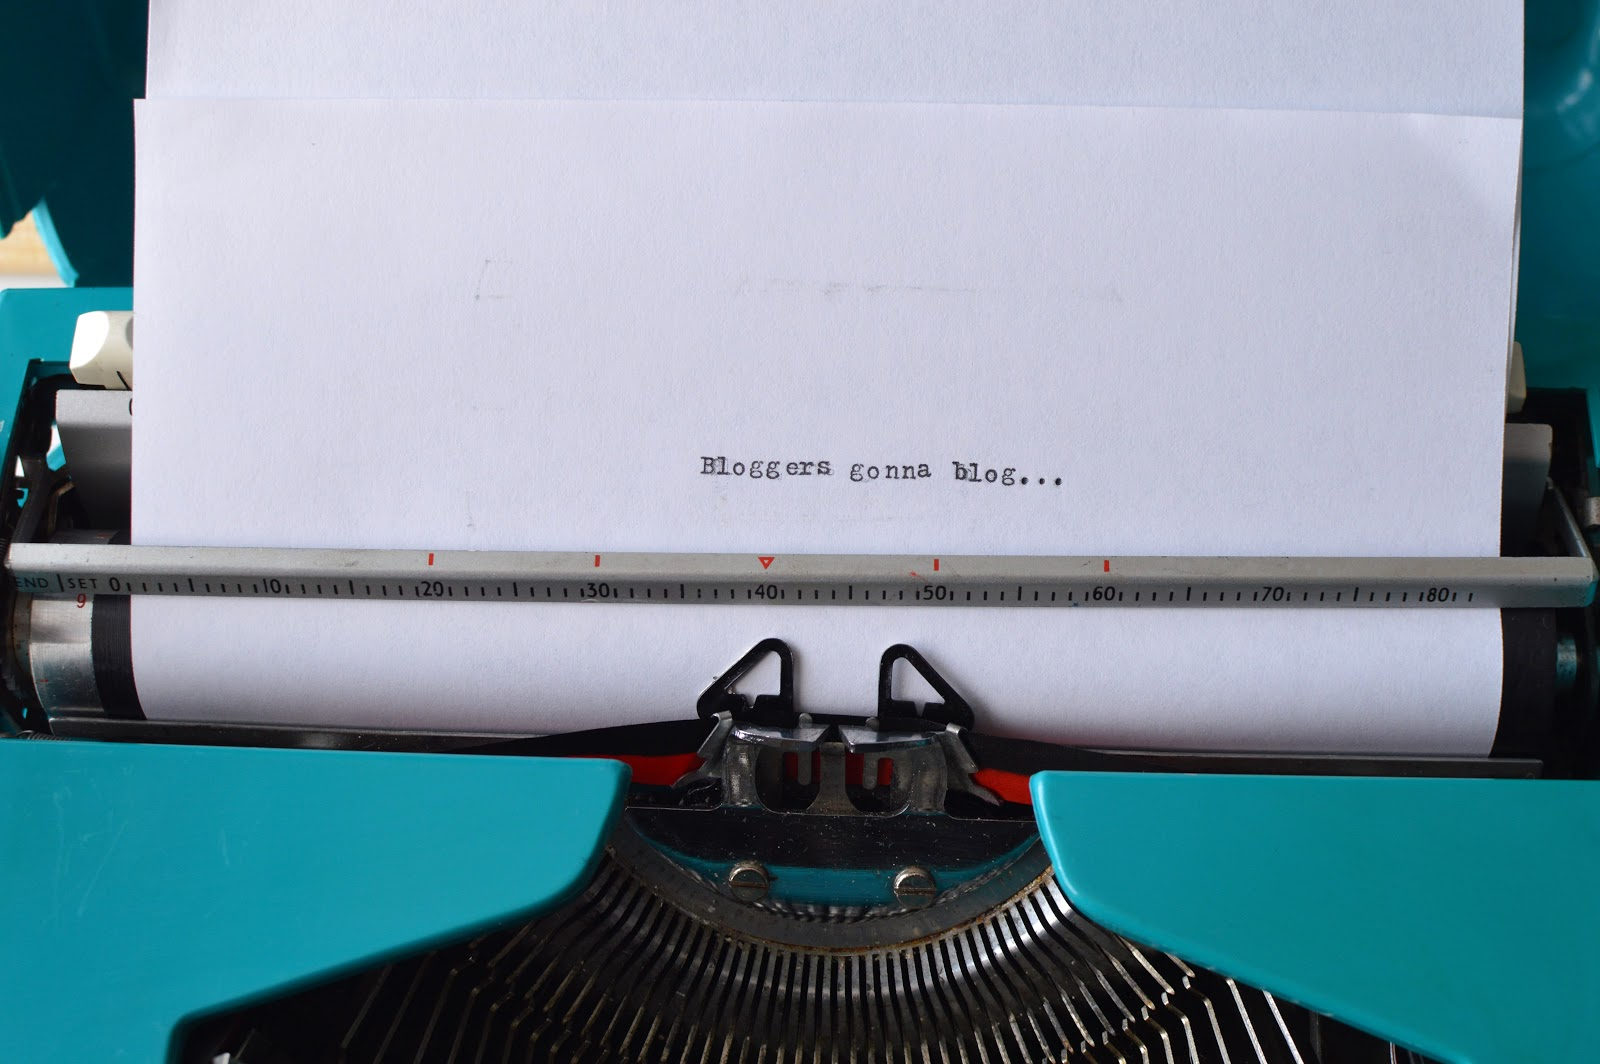 Vintage Typewriter Blogging Quote